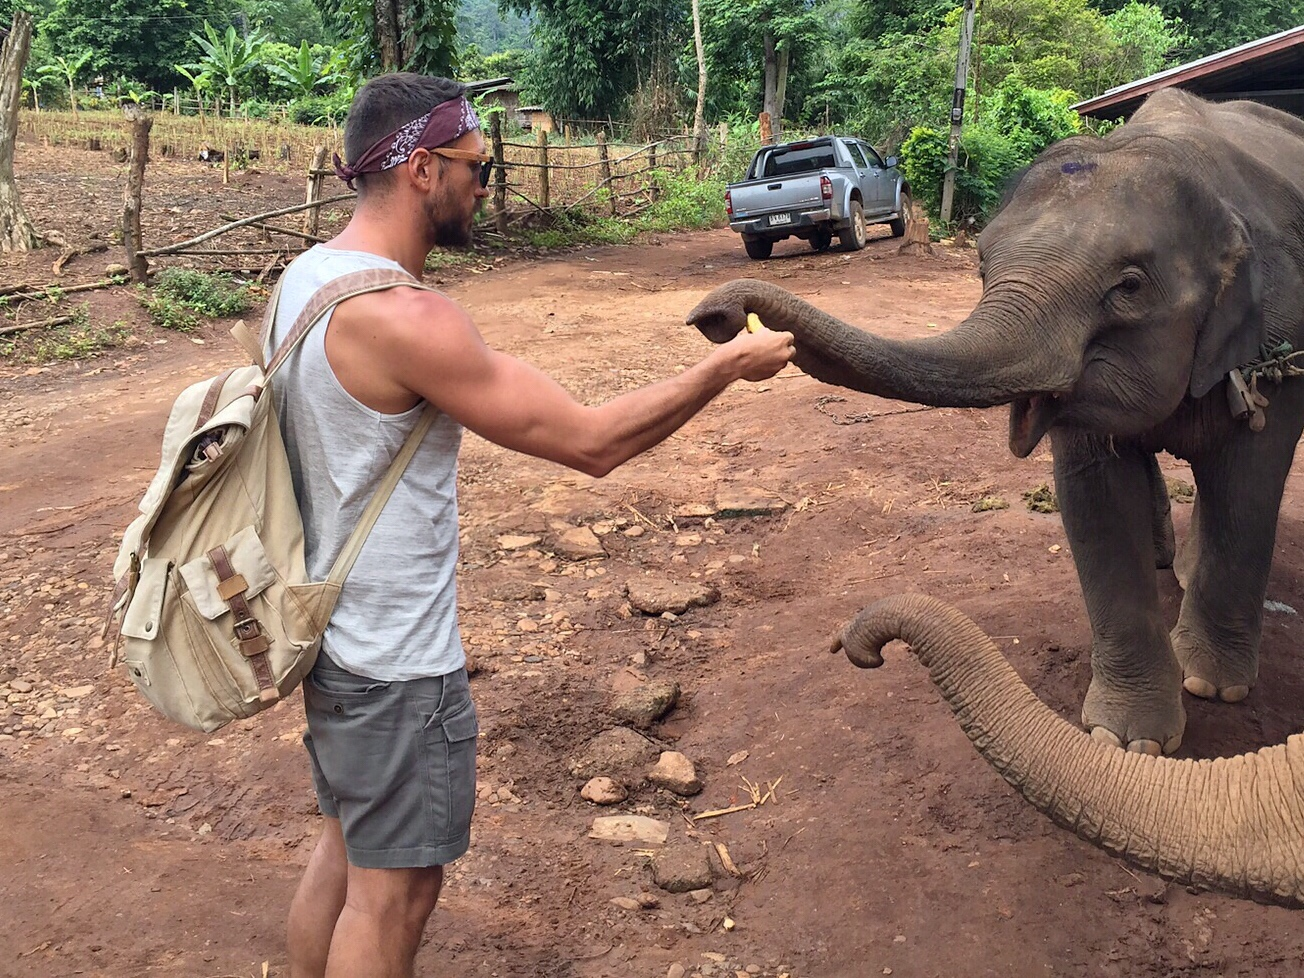 first contact with the elephants